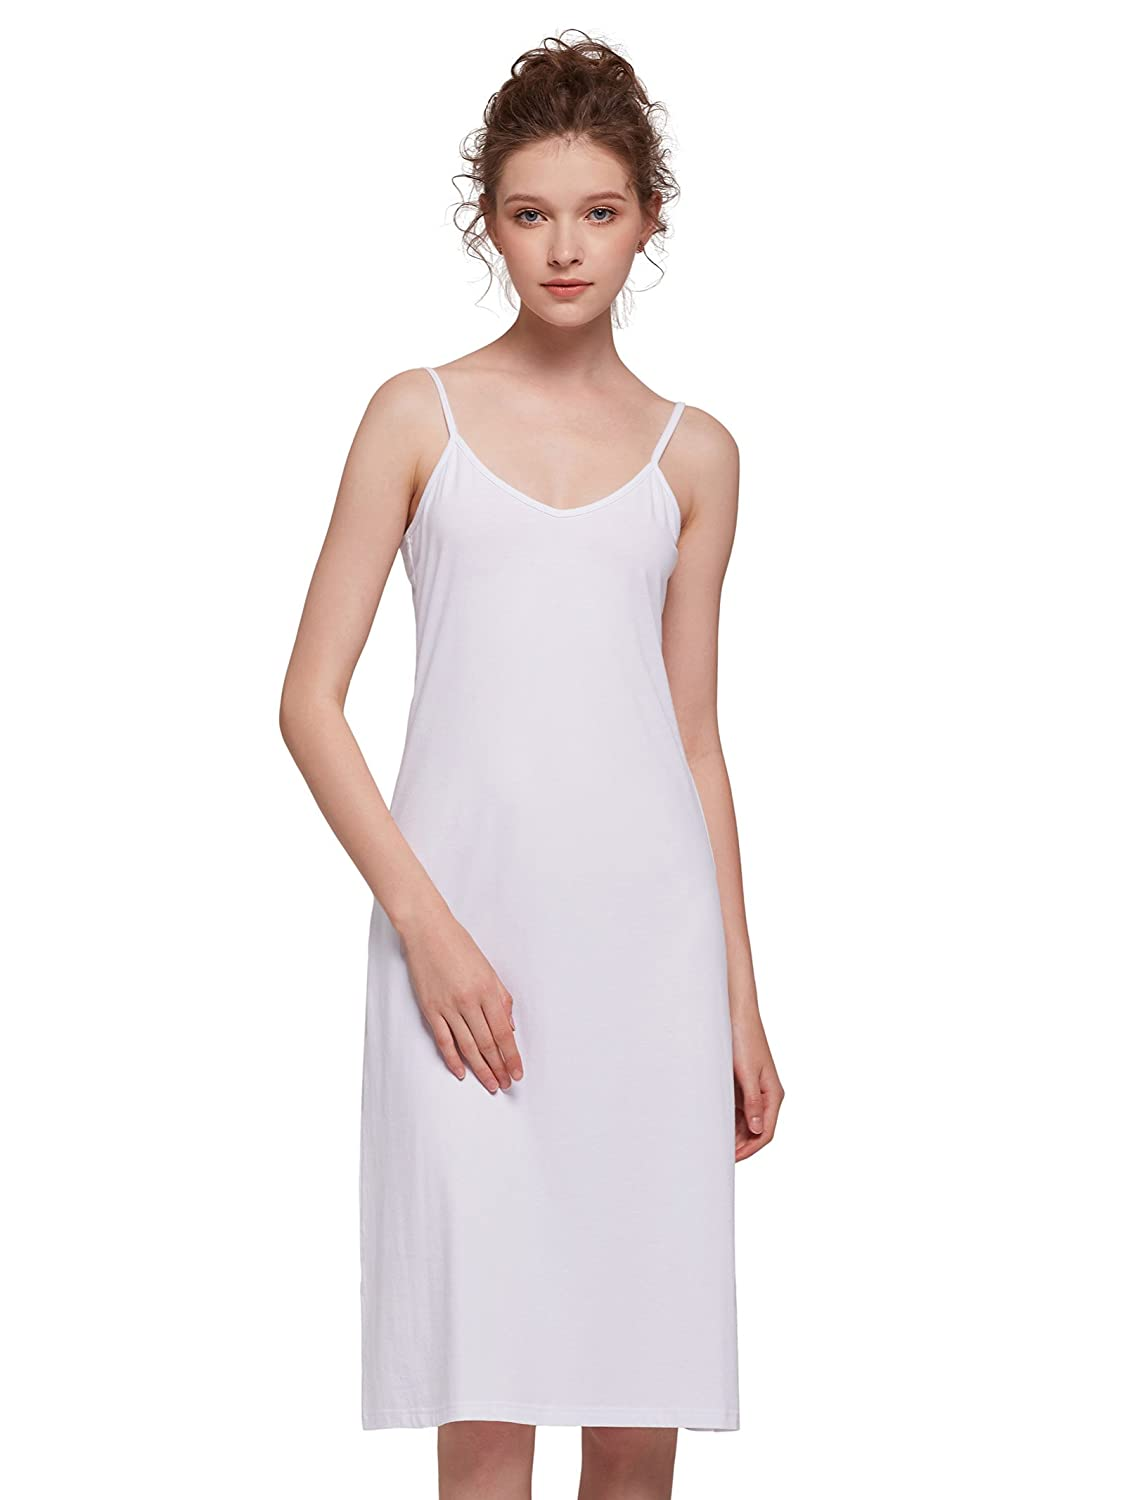 AWEI - Sottoveste - Donna Bianco White X-Large